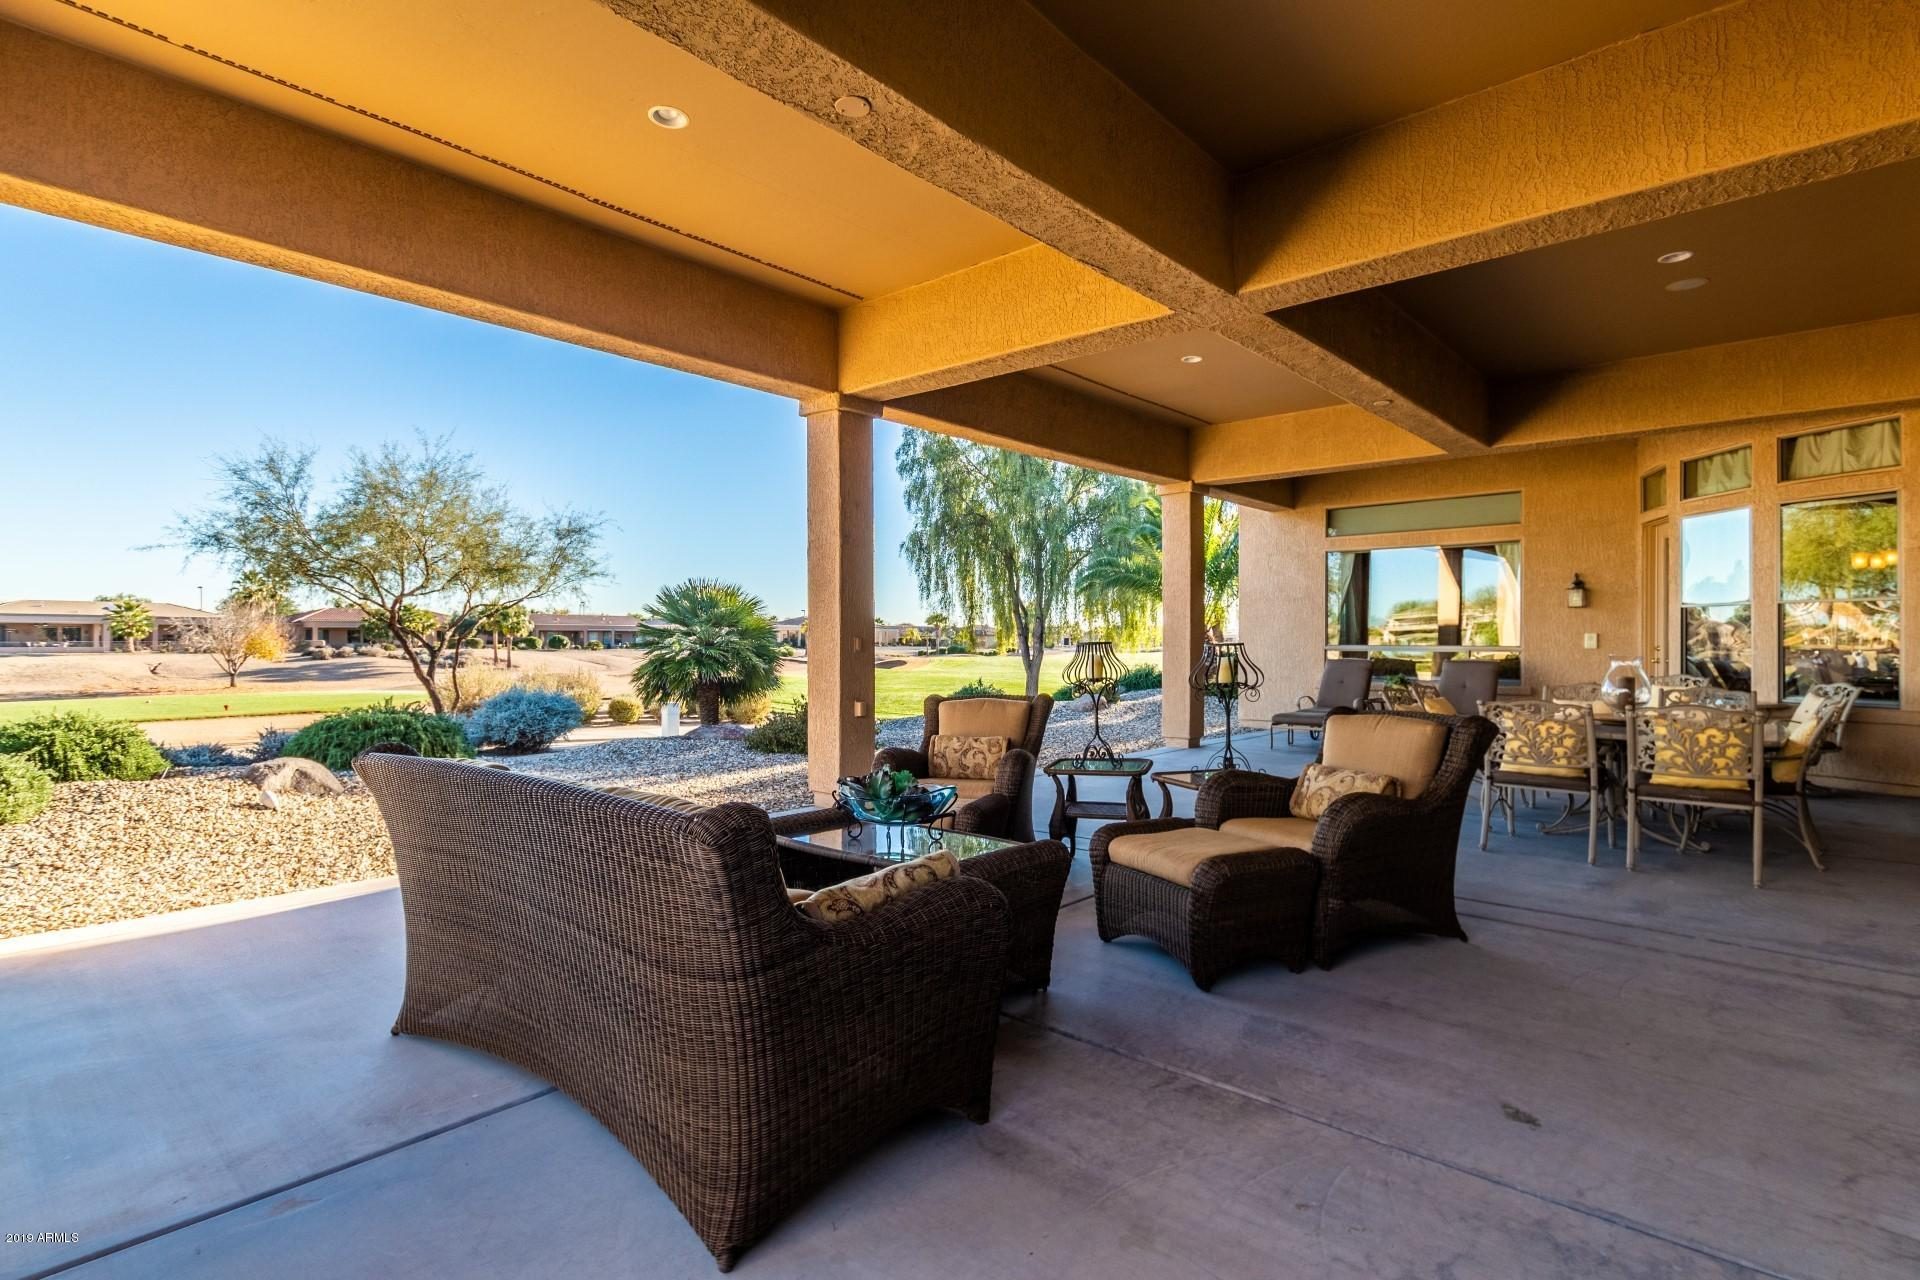 MLS 5863700 20917 N GRAND STAIRCASE Drive, Surprise, AZ 85387 Surprise AZ Adult Community